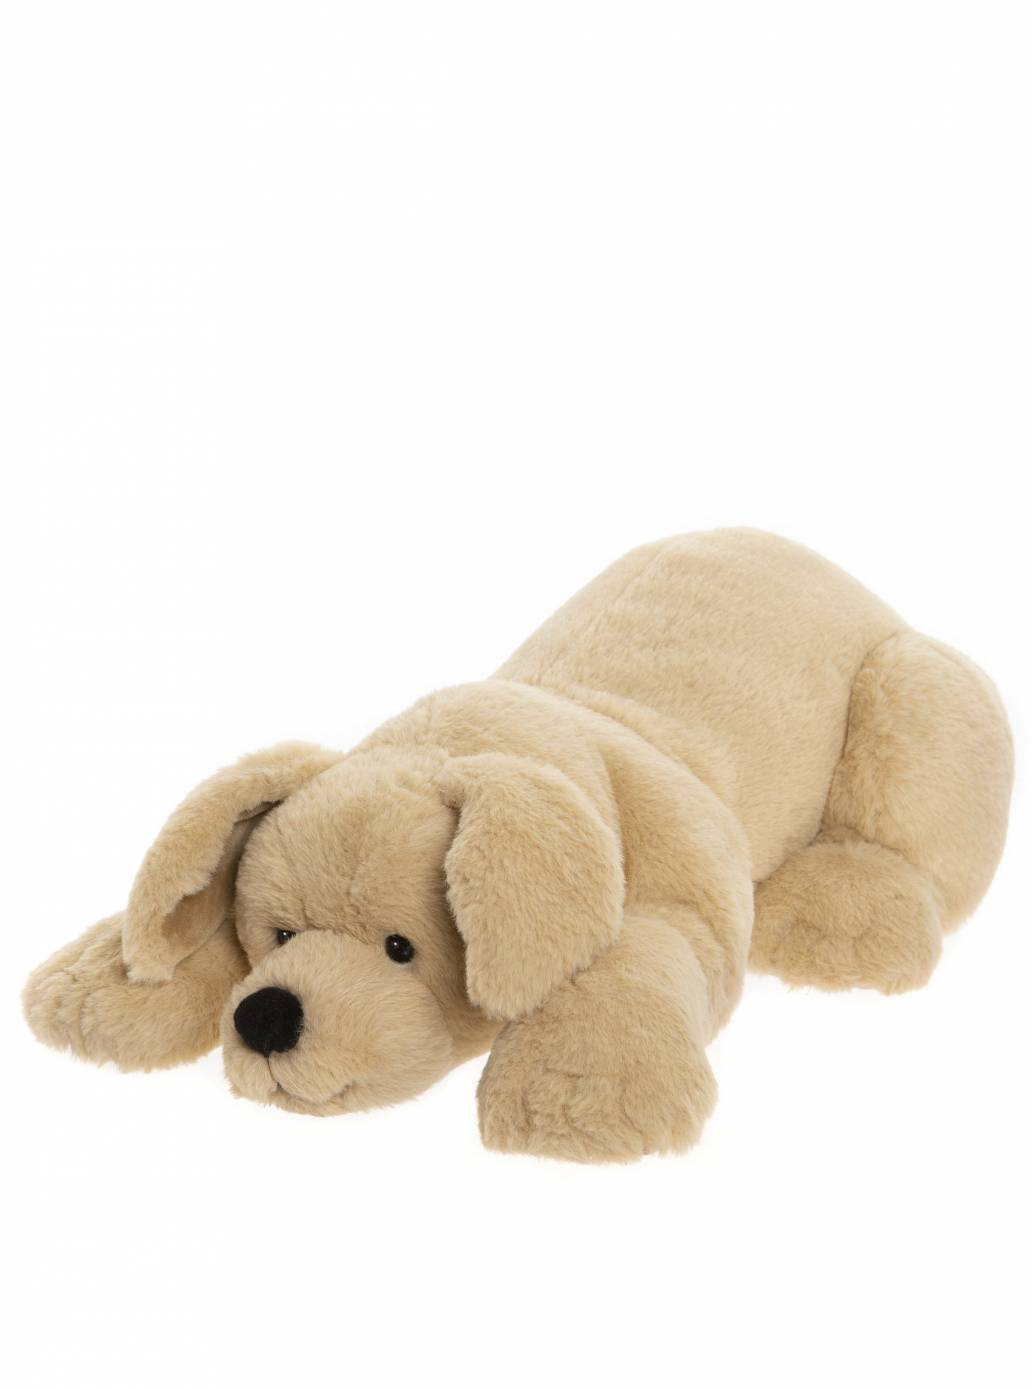 Charlie Bears - Ceasar - **Reserve Yours Now**